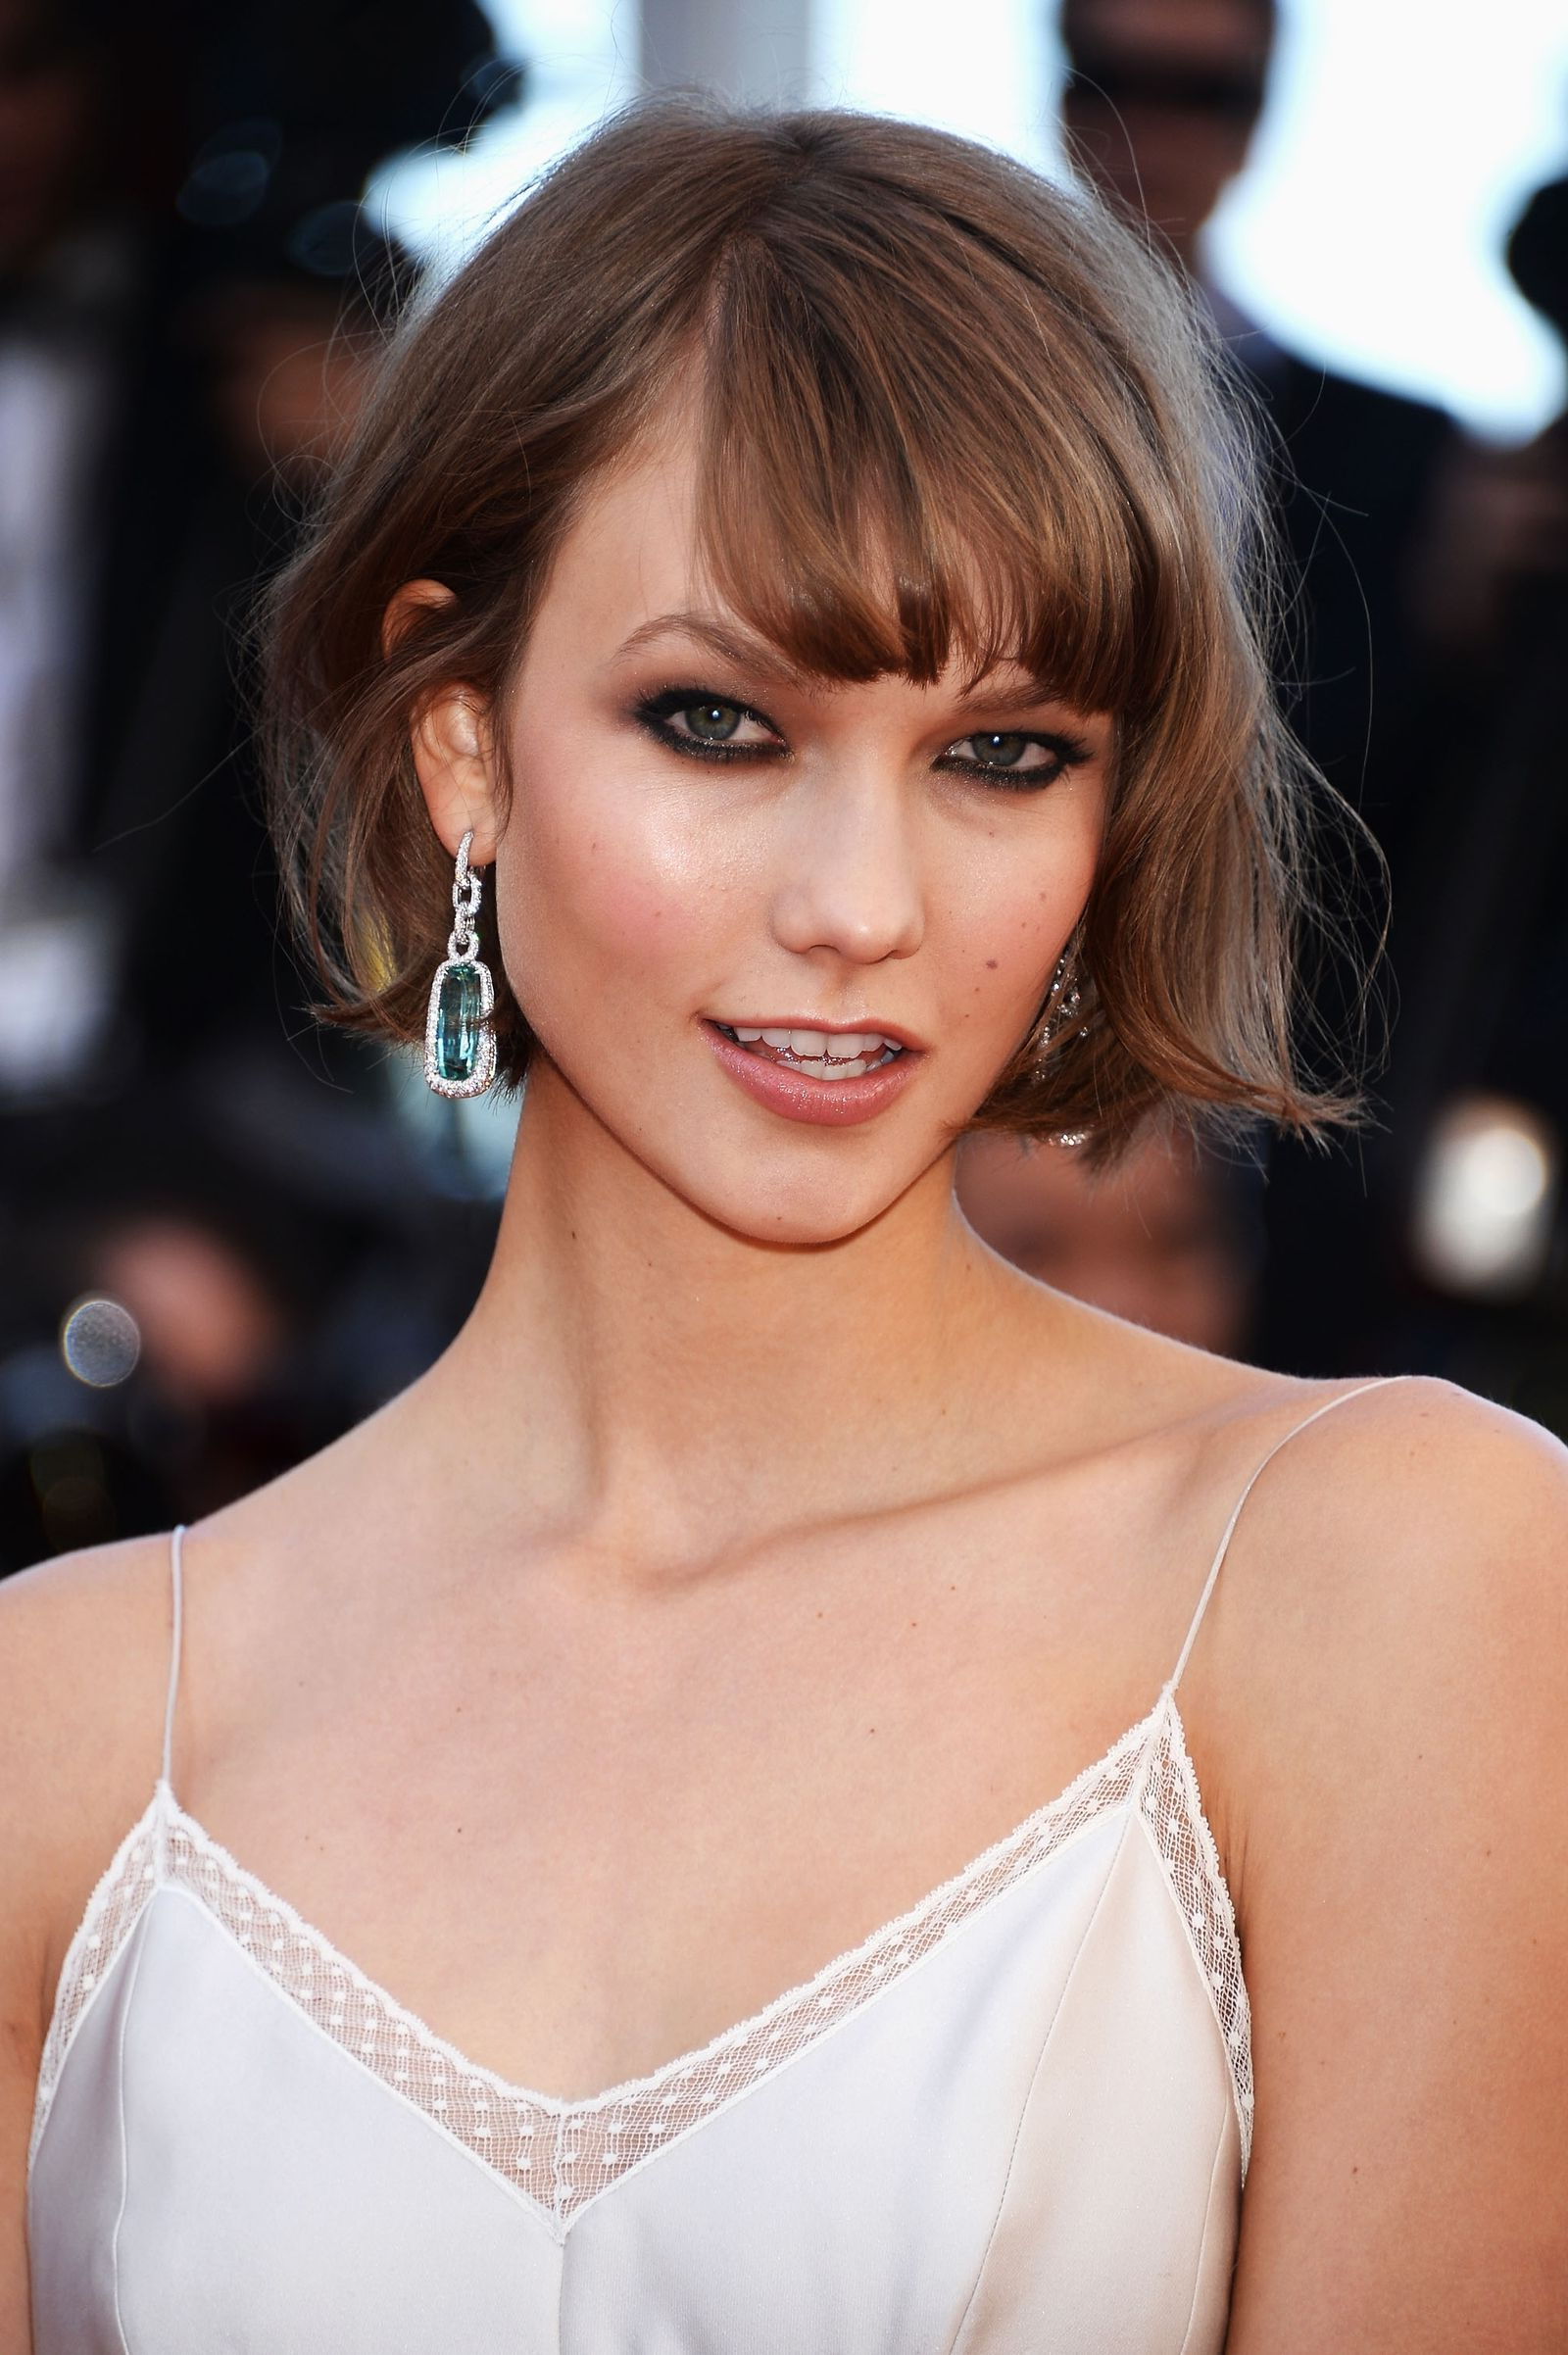 26 Perfectly Swoopy Side Bangs That Are Worth The Extra Maintenance Within Short Hairstyles With Flicks (View 7 of 20)